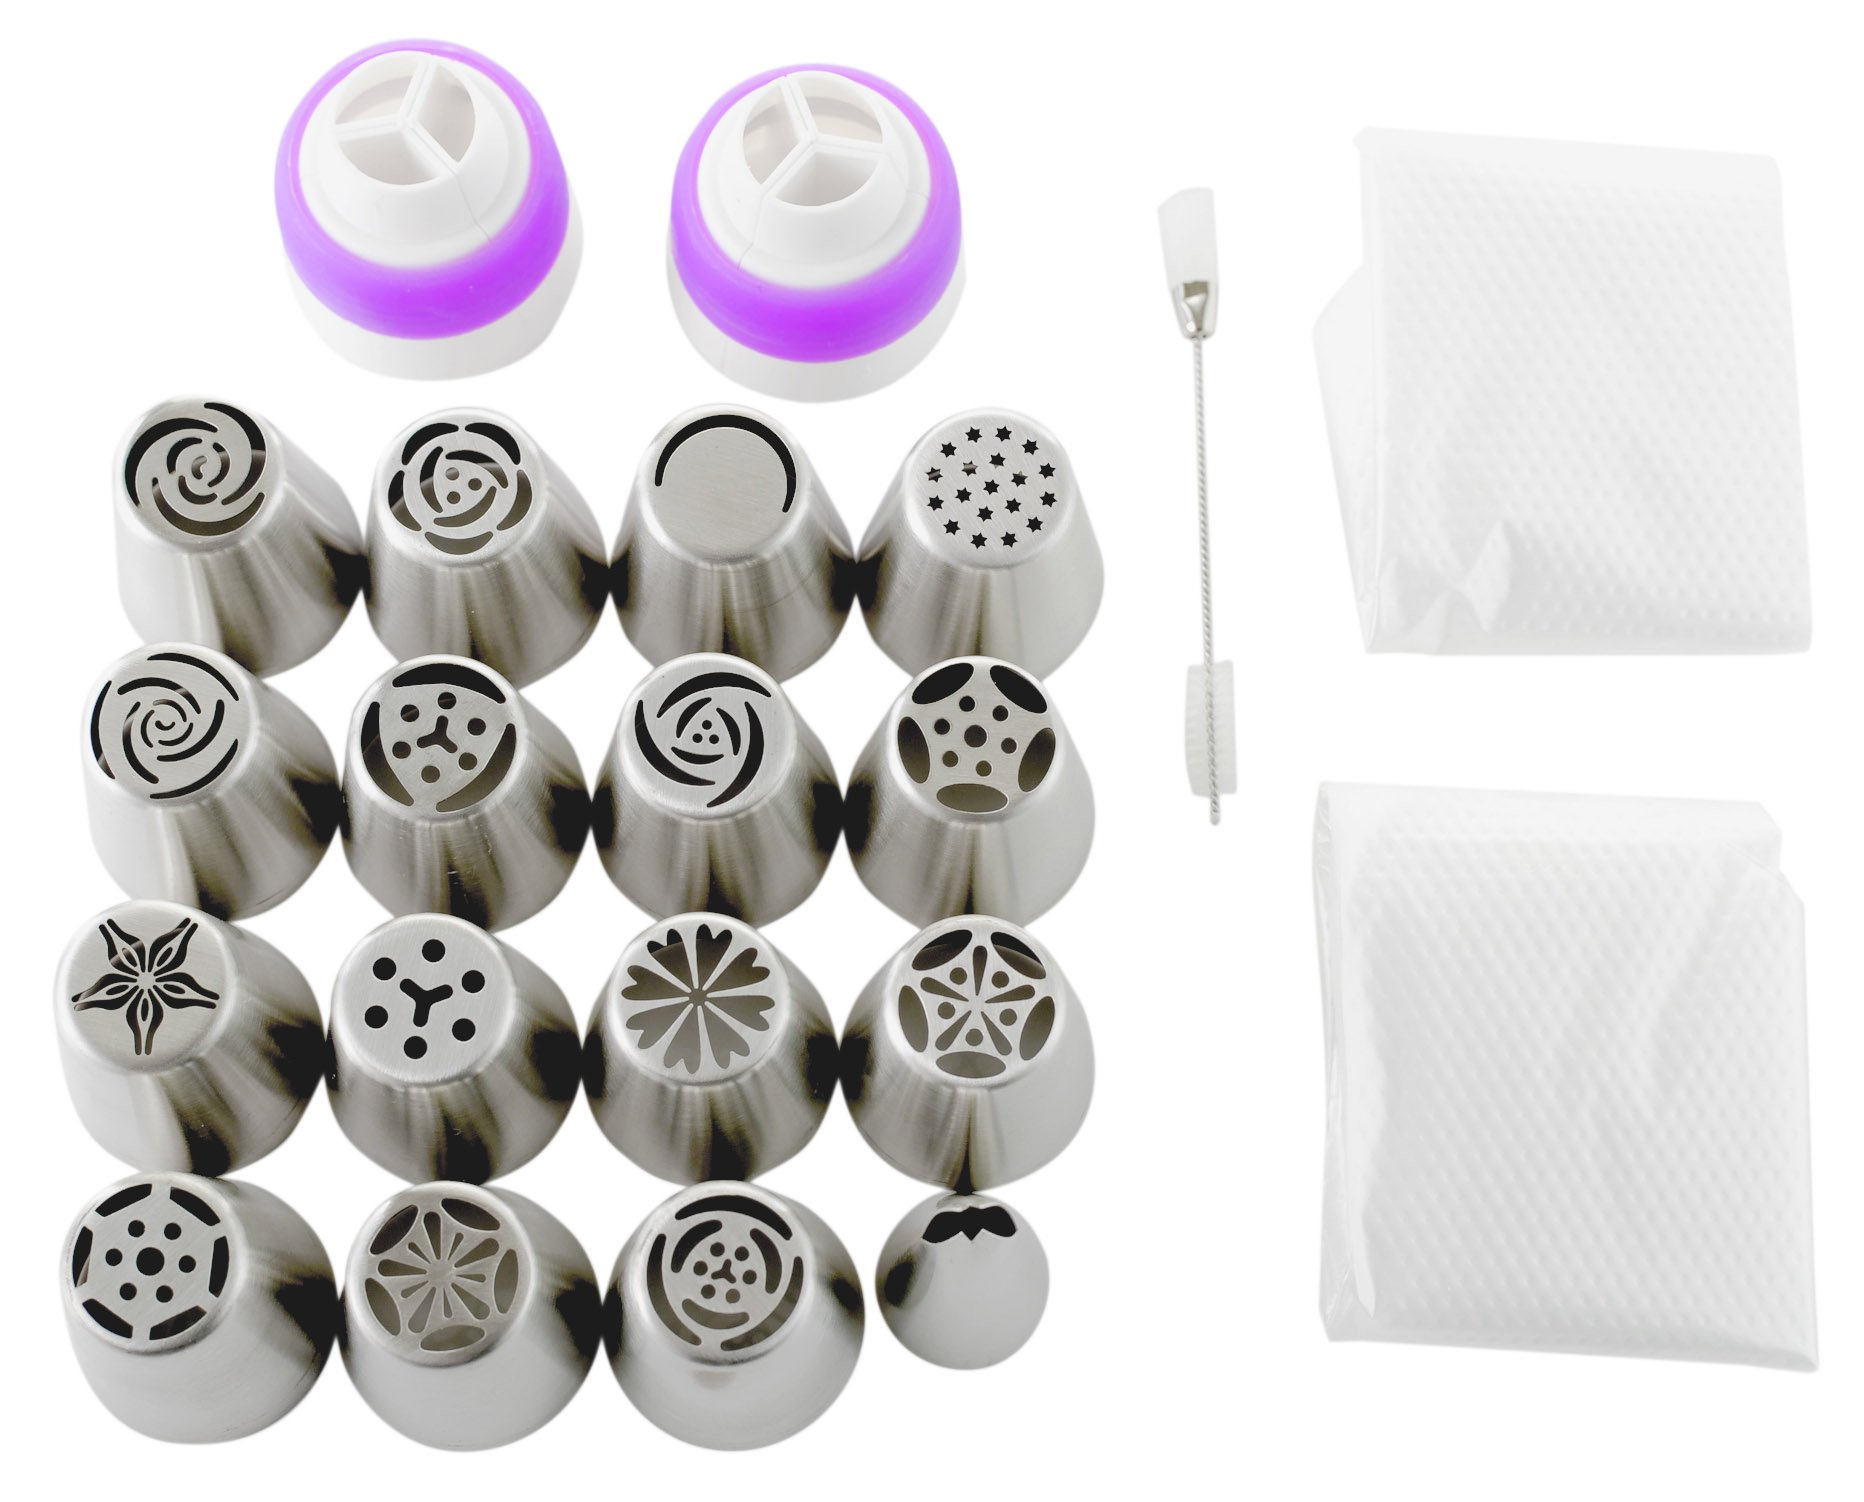 Russian Piping Tips Set (29-Piece Kit) | 15 Stainless Steel Icing Nozzles, 1 Leaf Tip, 10 Disposable Pastry Bags, 2 Couplers & 1 Brush | Flower Frosting Tools for Cake, Cookie, Cupcake Decoration 6 COMPLETE PIPING TIP SET: Unlike other cake frosting tips sets that require you to buy additional accessories, our extra-large 29-piece set comes with everything you need. This Russian piping tips kit includes 15 piping nozzles tips, 1 leaf tip, 2 tri-color reusable couplers, 10 disposable pastry bags, and 1 cleaning brush. Get extra accessories without having to pay extra. DURABLE & FOOD-SAFE: No dealing with regular metal piping tips that bend out of shape with a single use. Our Russian icing piping tips are crafted from sturdy food-safe stainless steel that handles thick frosting without ever losing shape. The 18/8 (304) stainless steel tips are also FDA-approved to ensure no toxins ever make their way into your treats. DECORATING MADE EASY: Create mouthwatering masterpieces without much effort even if you're a beginner. While other frosting decorating tips have tiny openings that easily clog and ruin the flow of the icing, ours are larger and produce beautiful results with a simple squeeze. We've even included handy instructions on how to use the couplers.